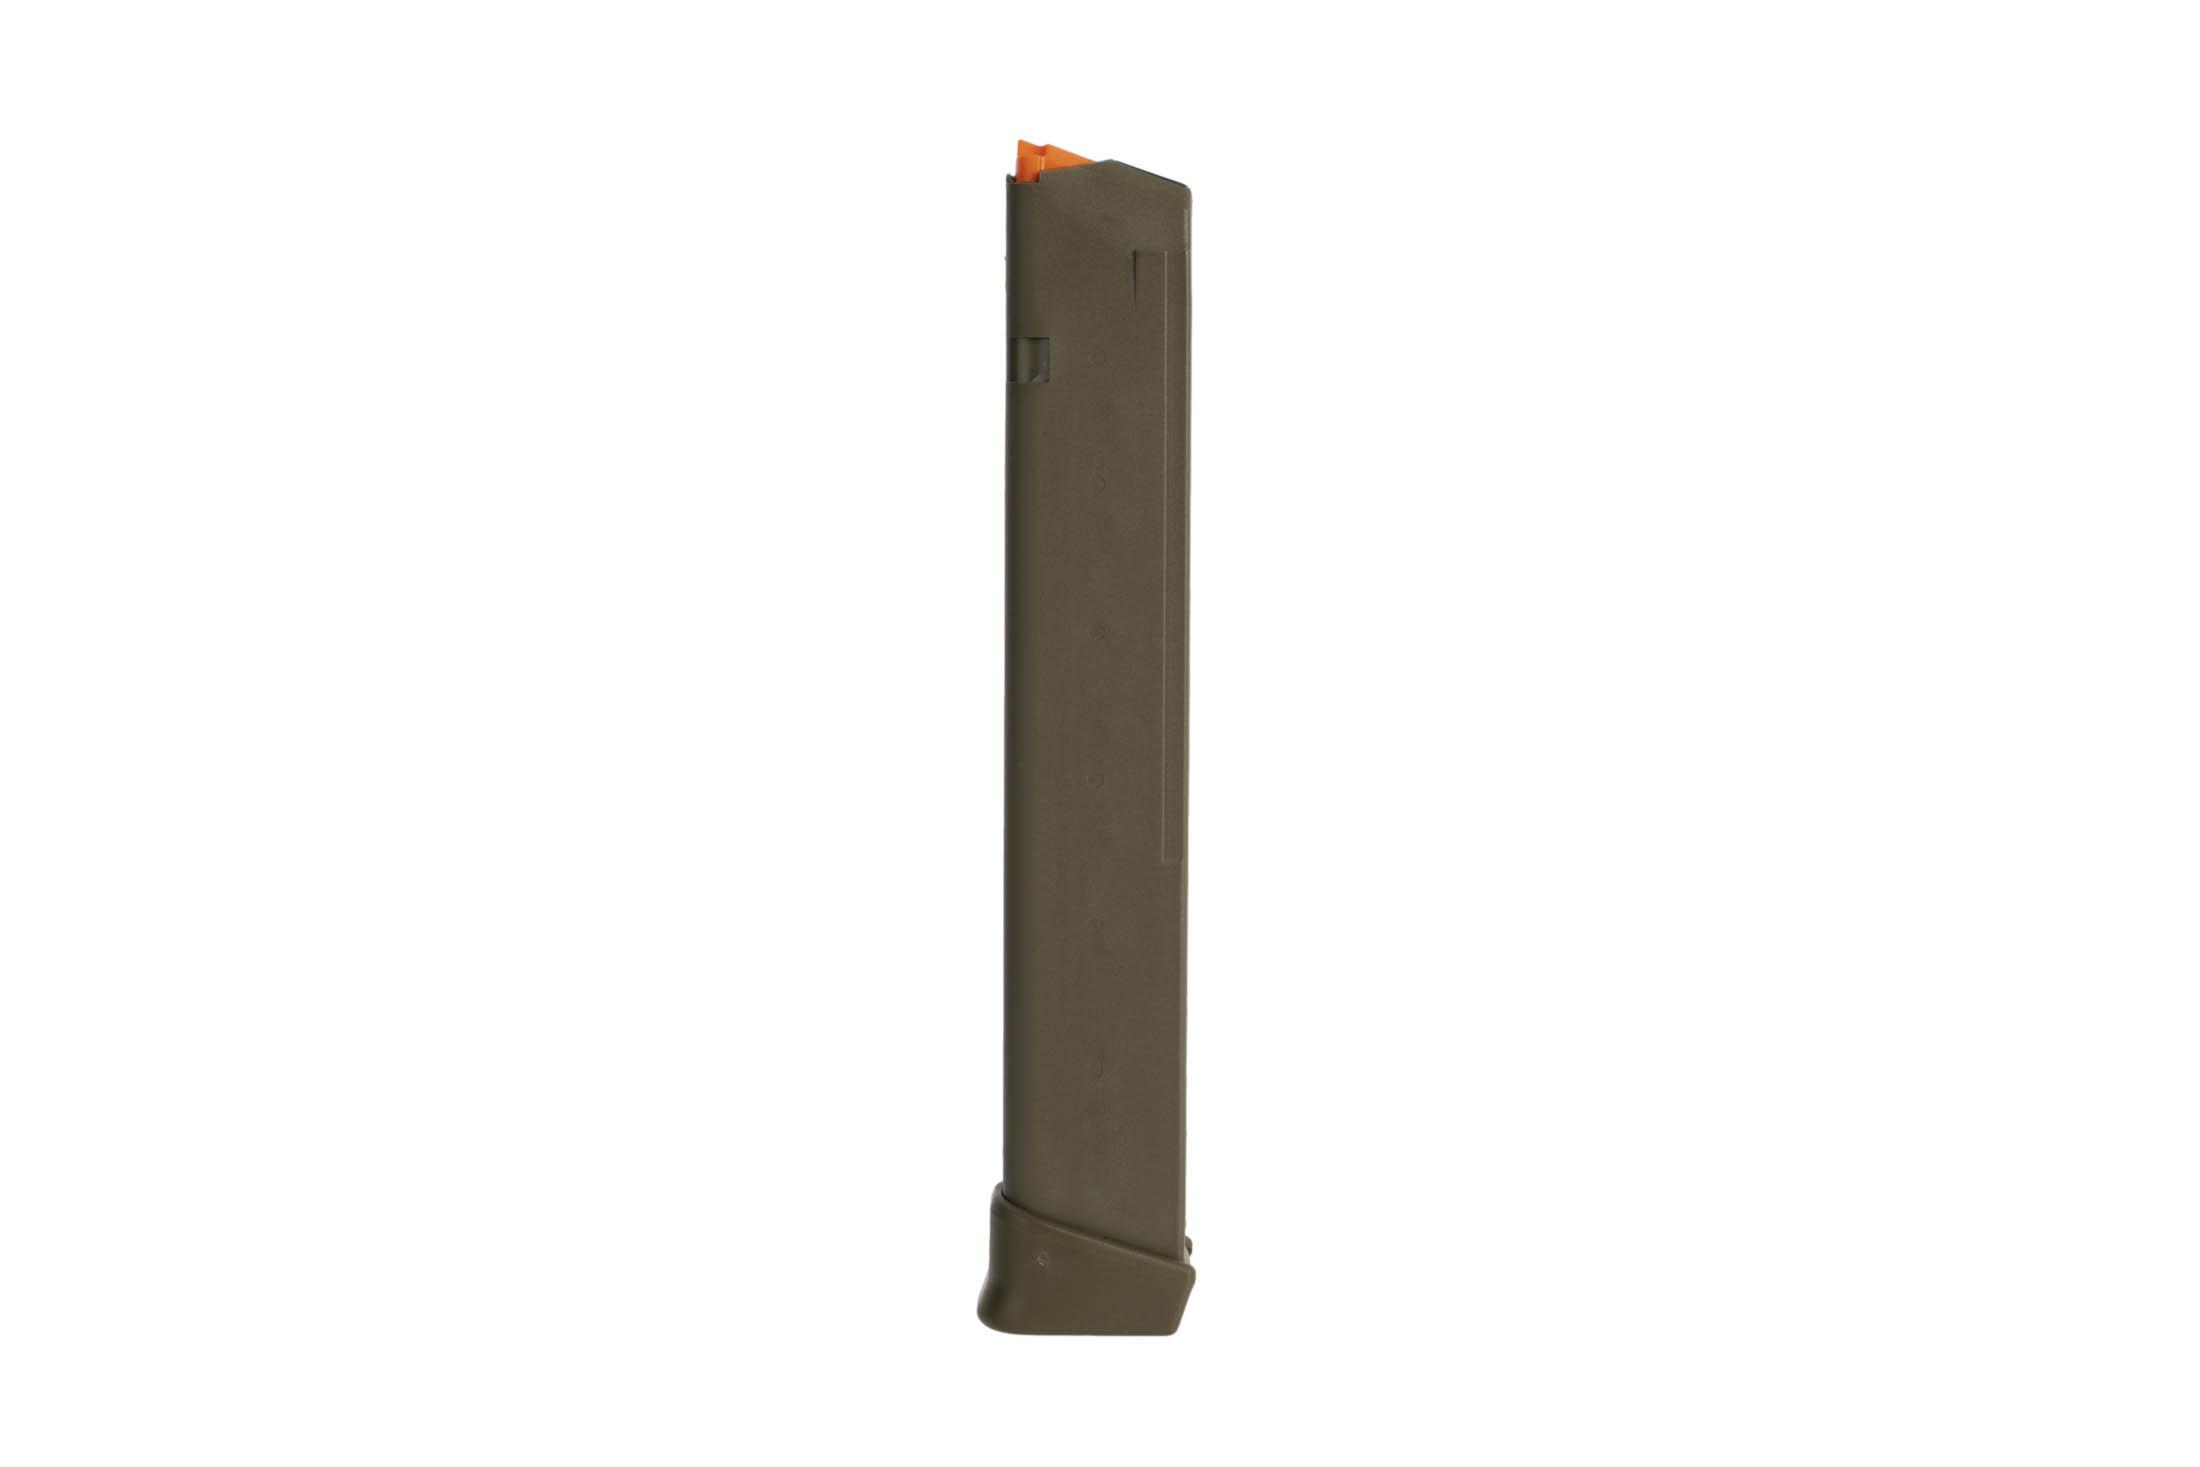 Glock OEM model 17 5th gen 33-round hi capacity mags have an ODG finish and extended base plate for fast magazine changes